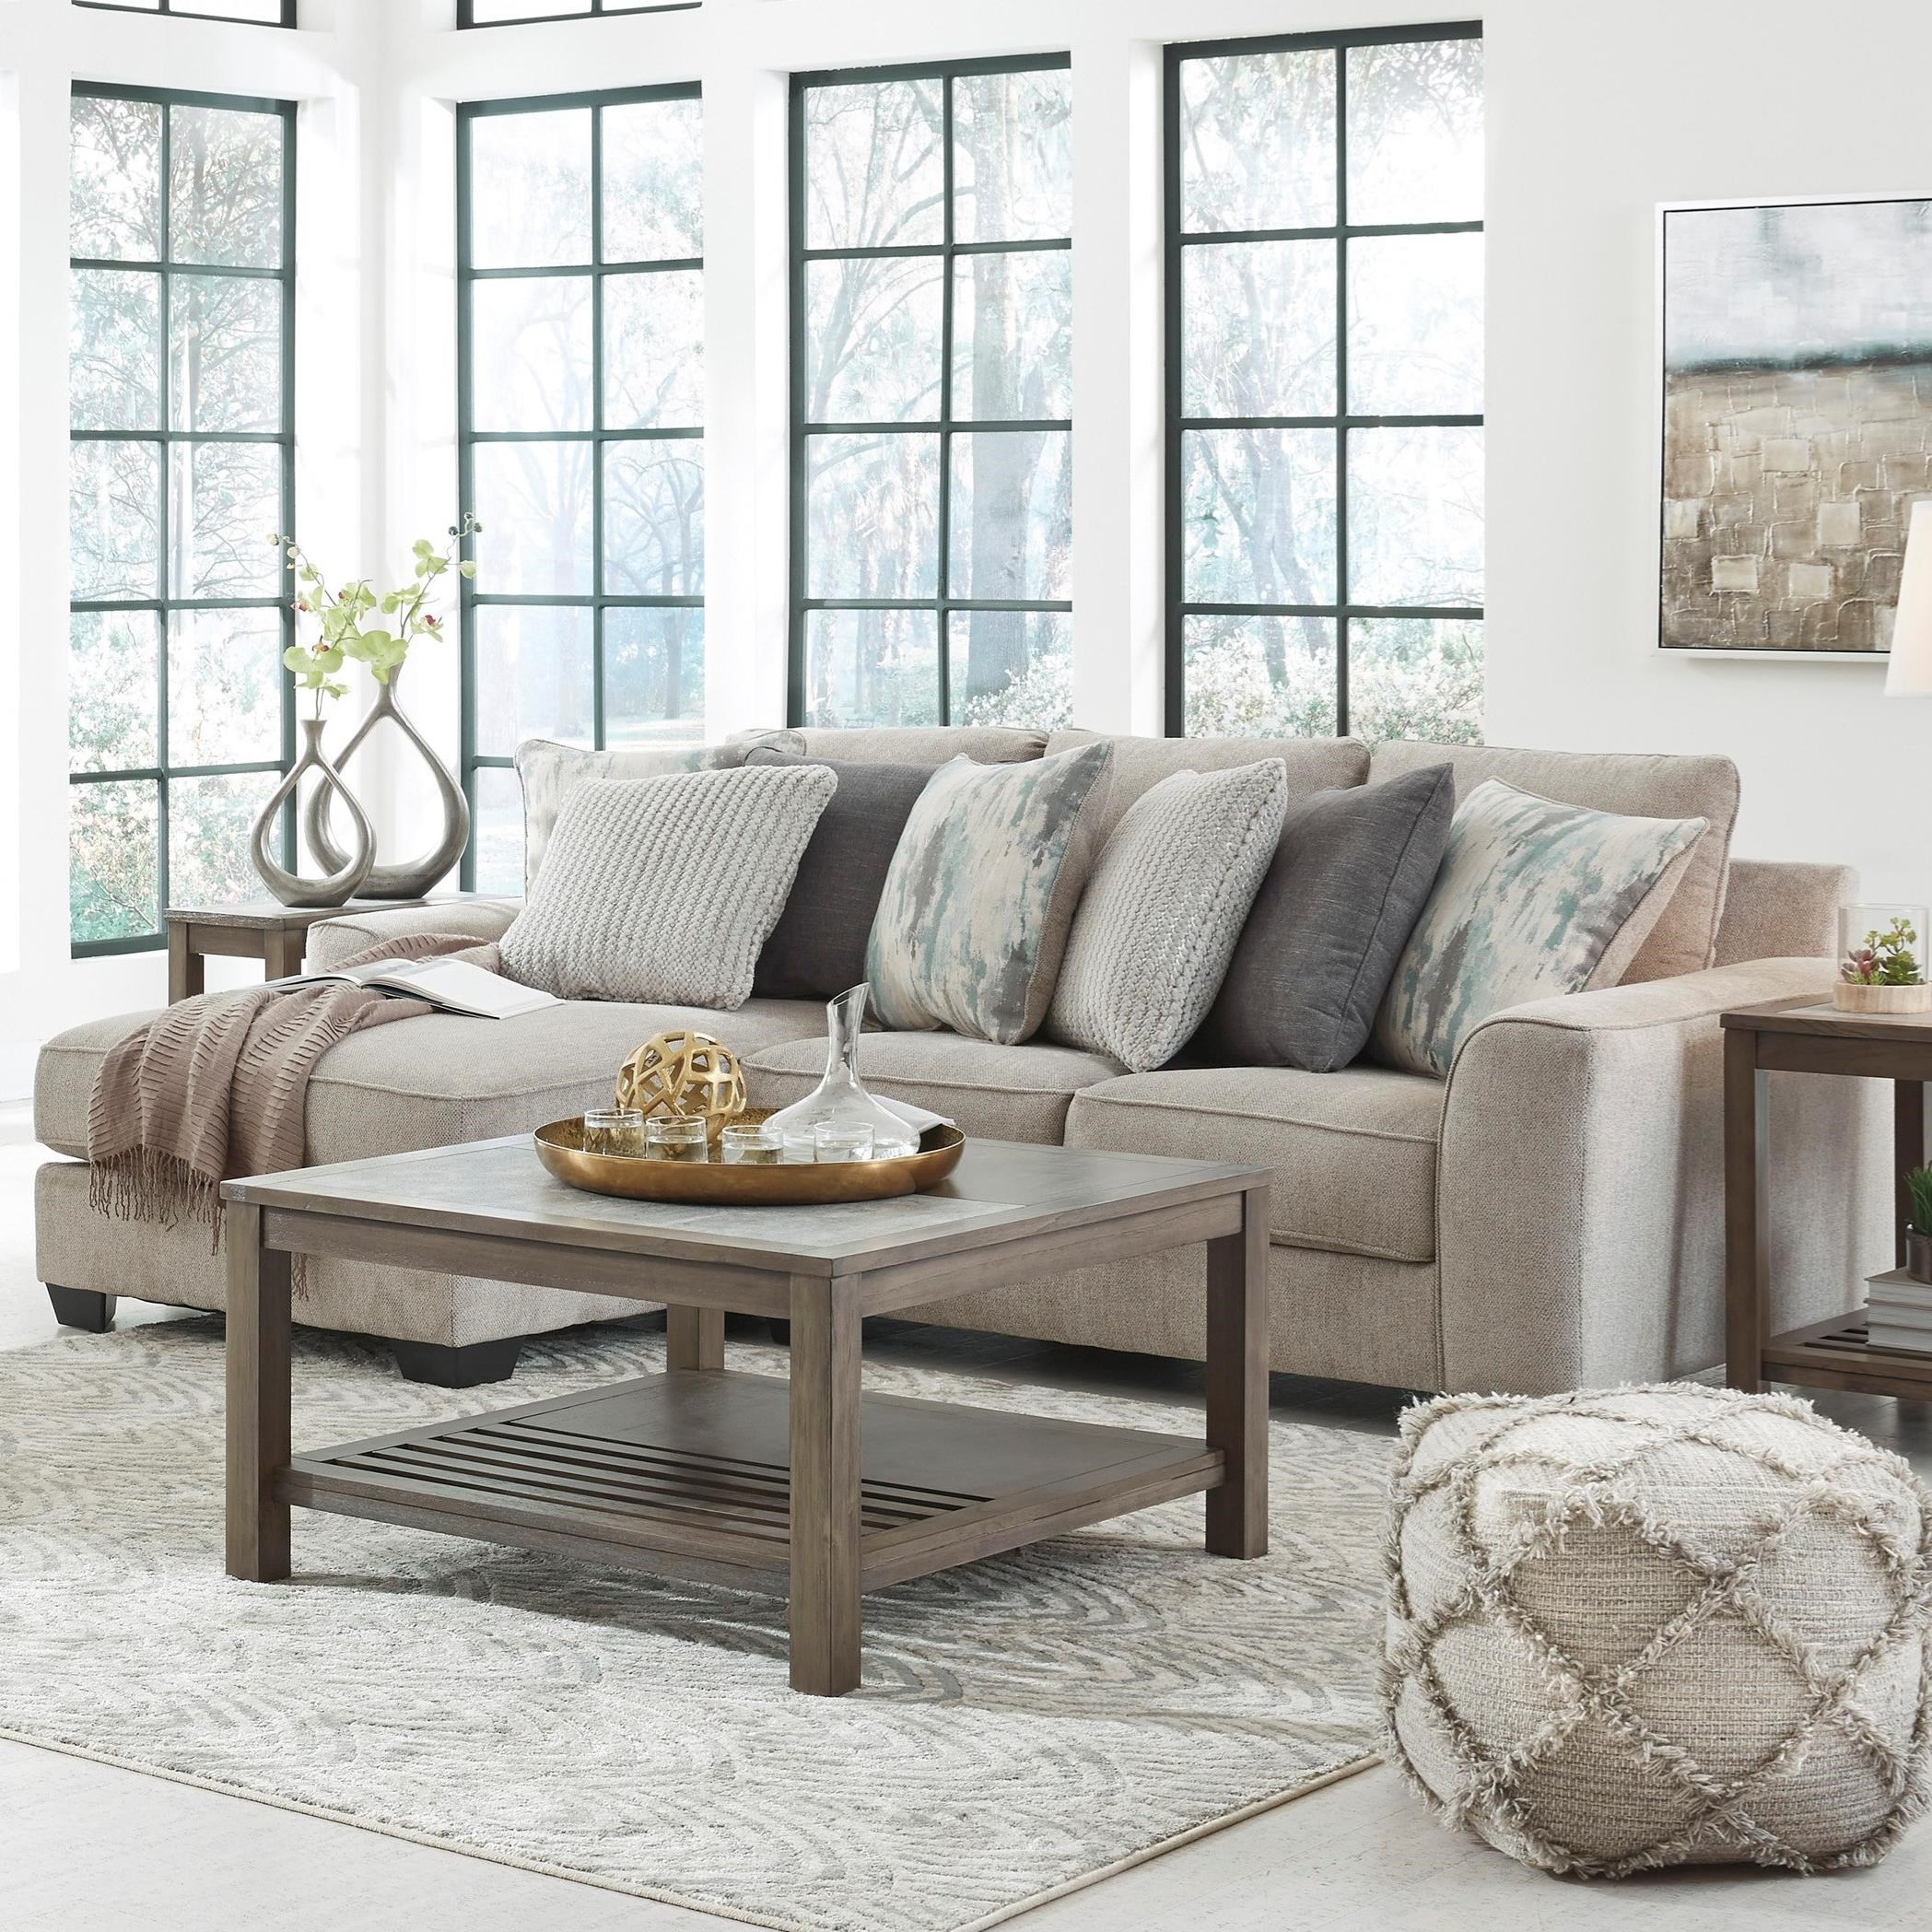 Ardsley 2-Piece Sectional with Left Chaise by Benchcraft at Miller Waldrop Furniture and Decor